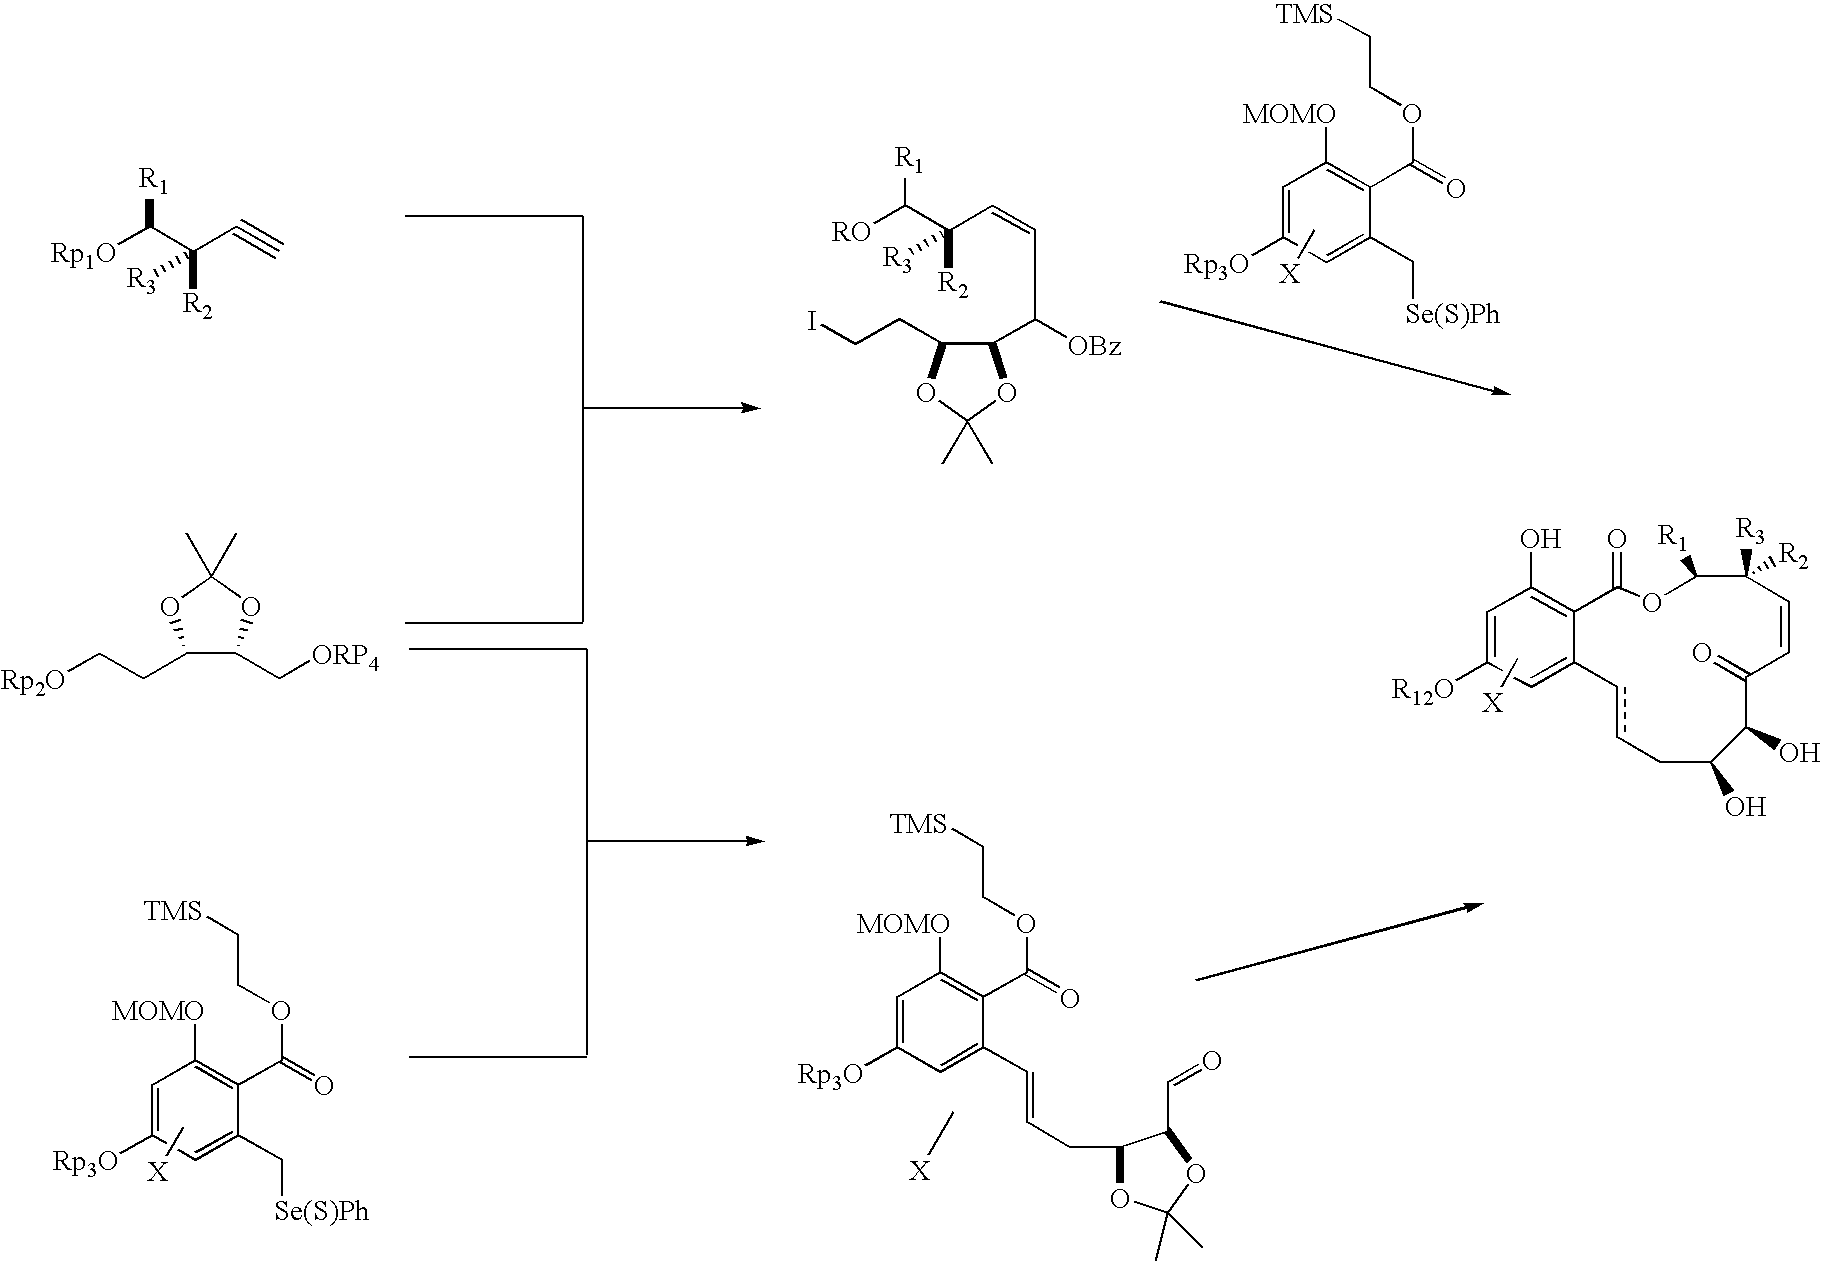 Us20040224936a1 Macrocyclic Compounds Useful As Pharmaceuticals Diagram Wiring Rz 088 Figure 20041111 C00022